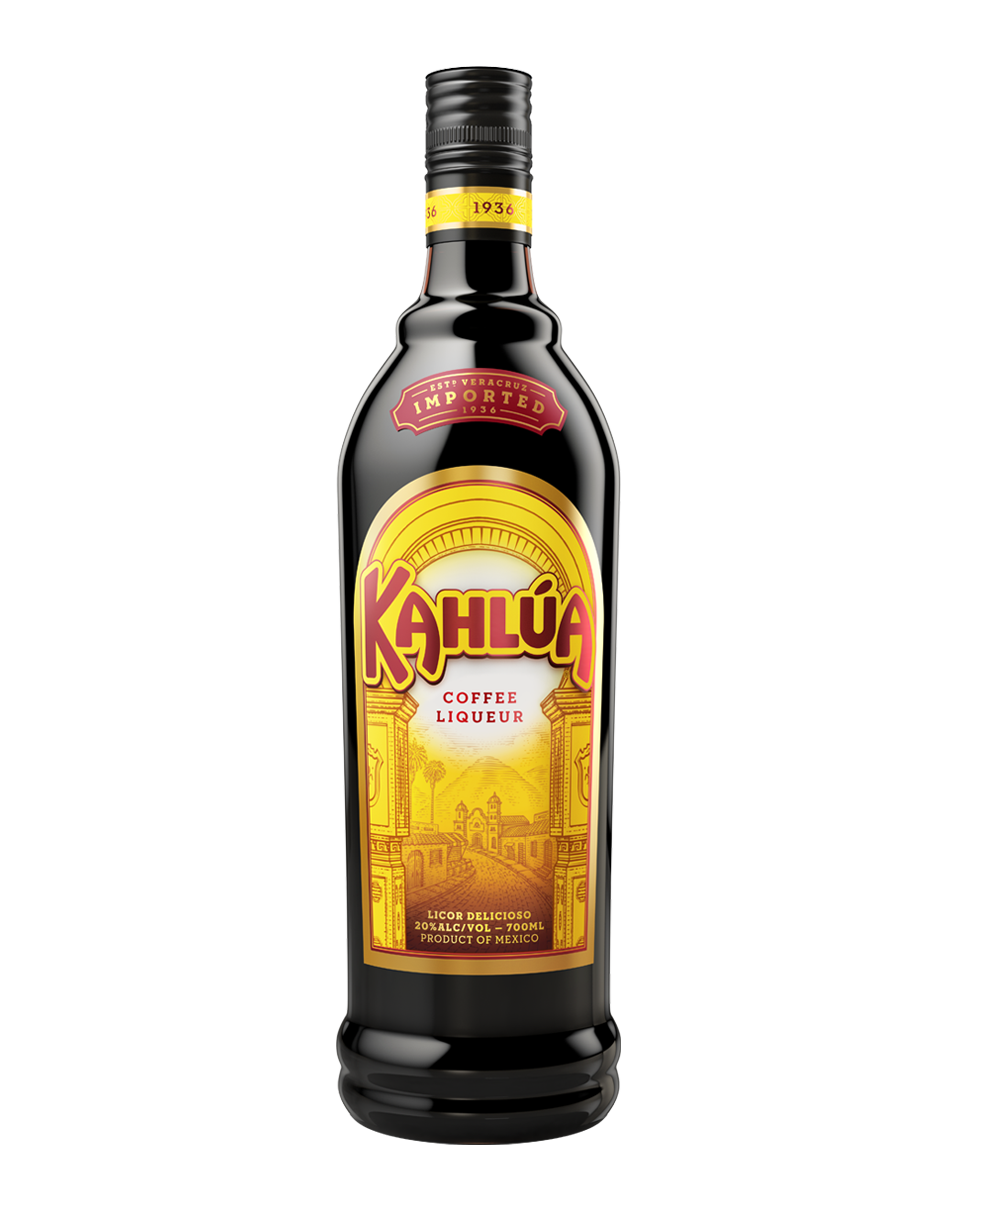 How To Make Kahlua (Coffee Liqueur)